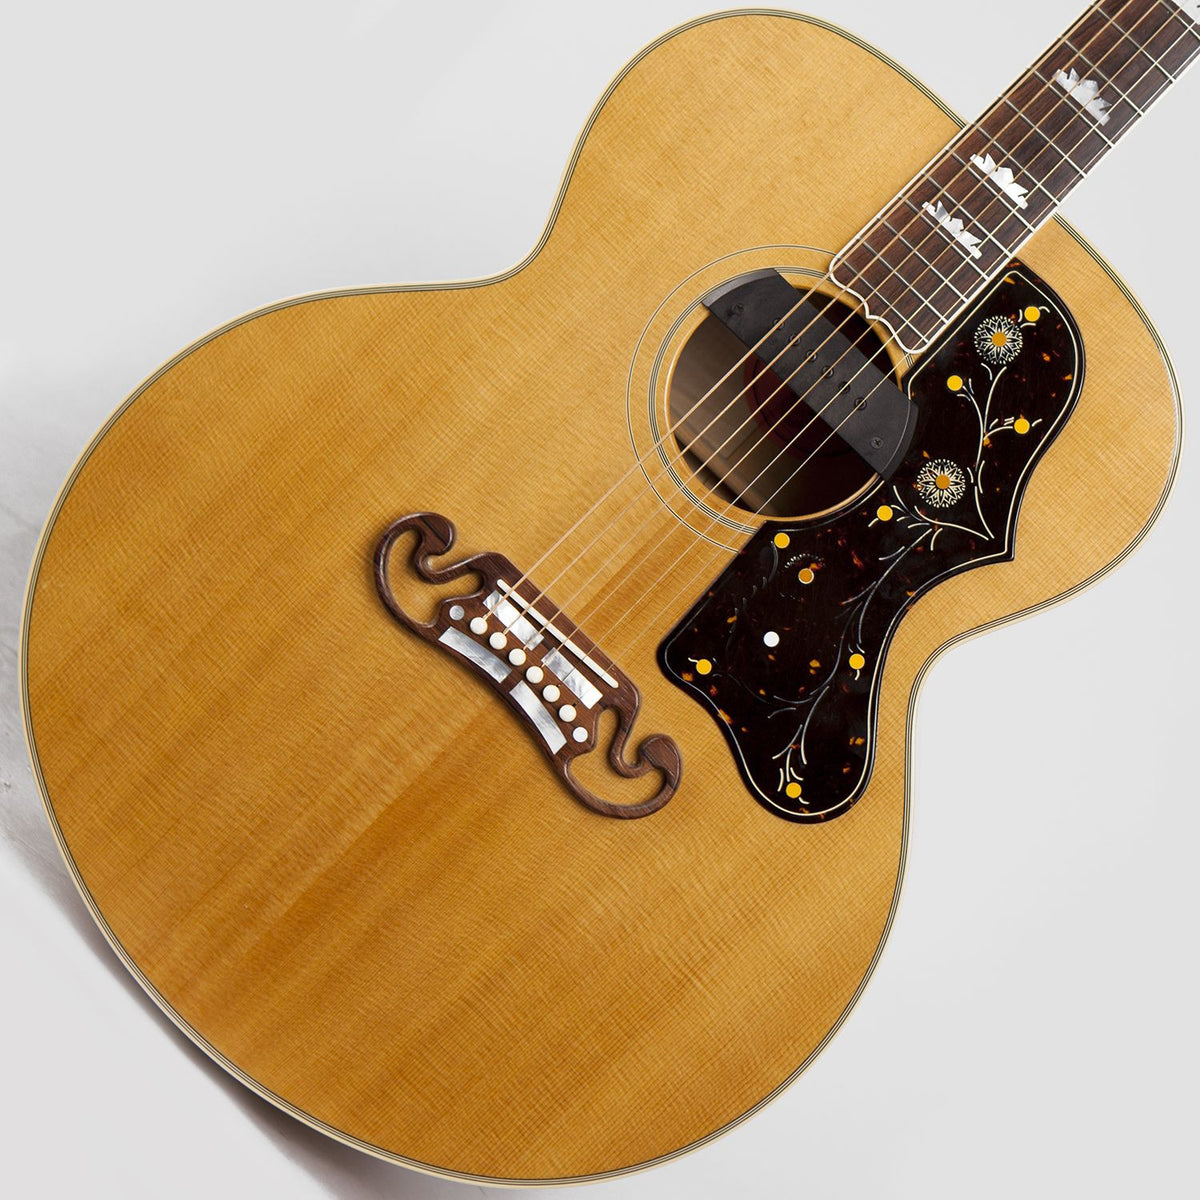 2001 Gibson SJ-200, Blonde Beauty - Garrett Park Guitars  - 1